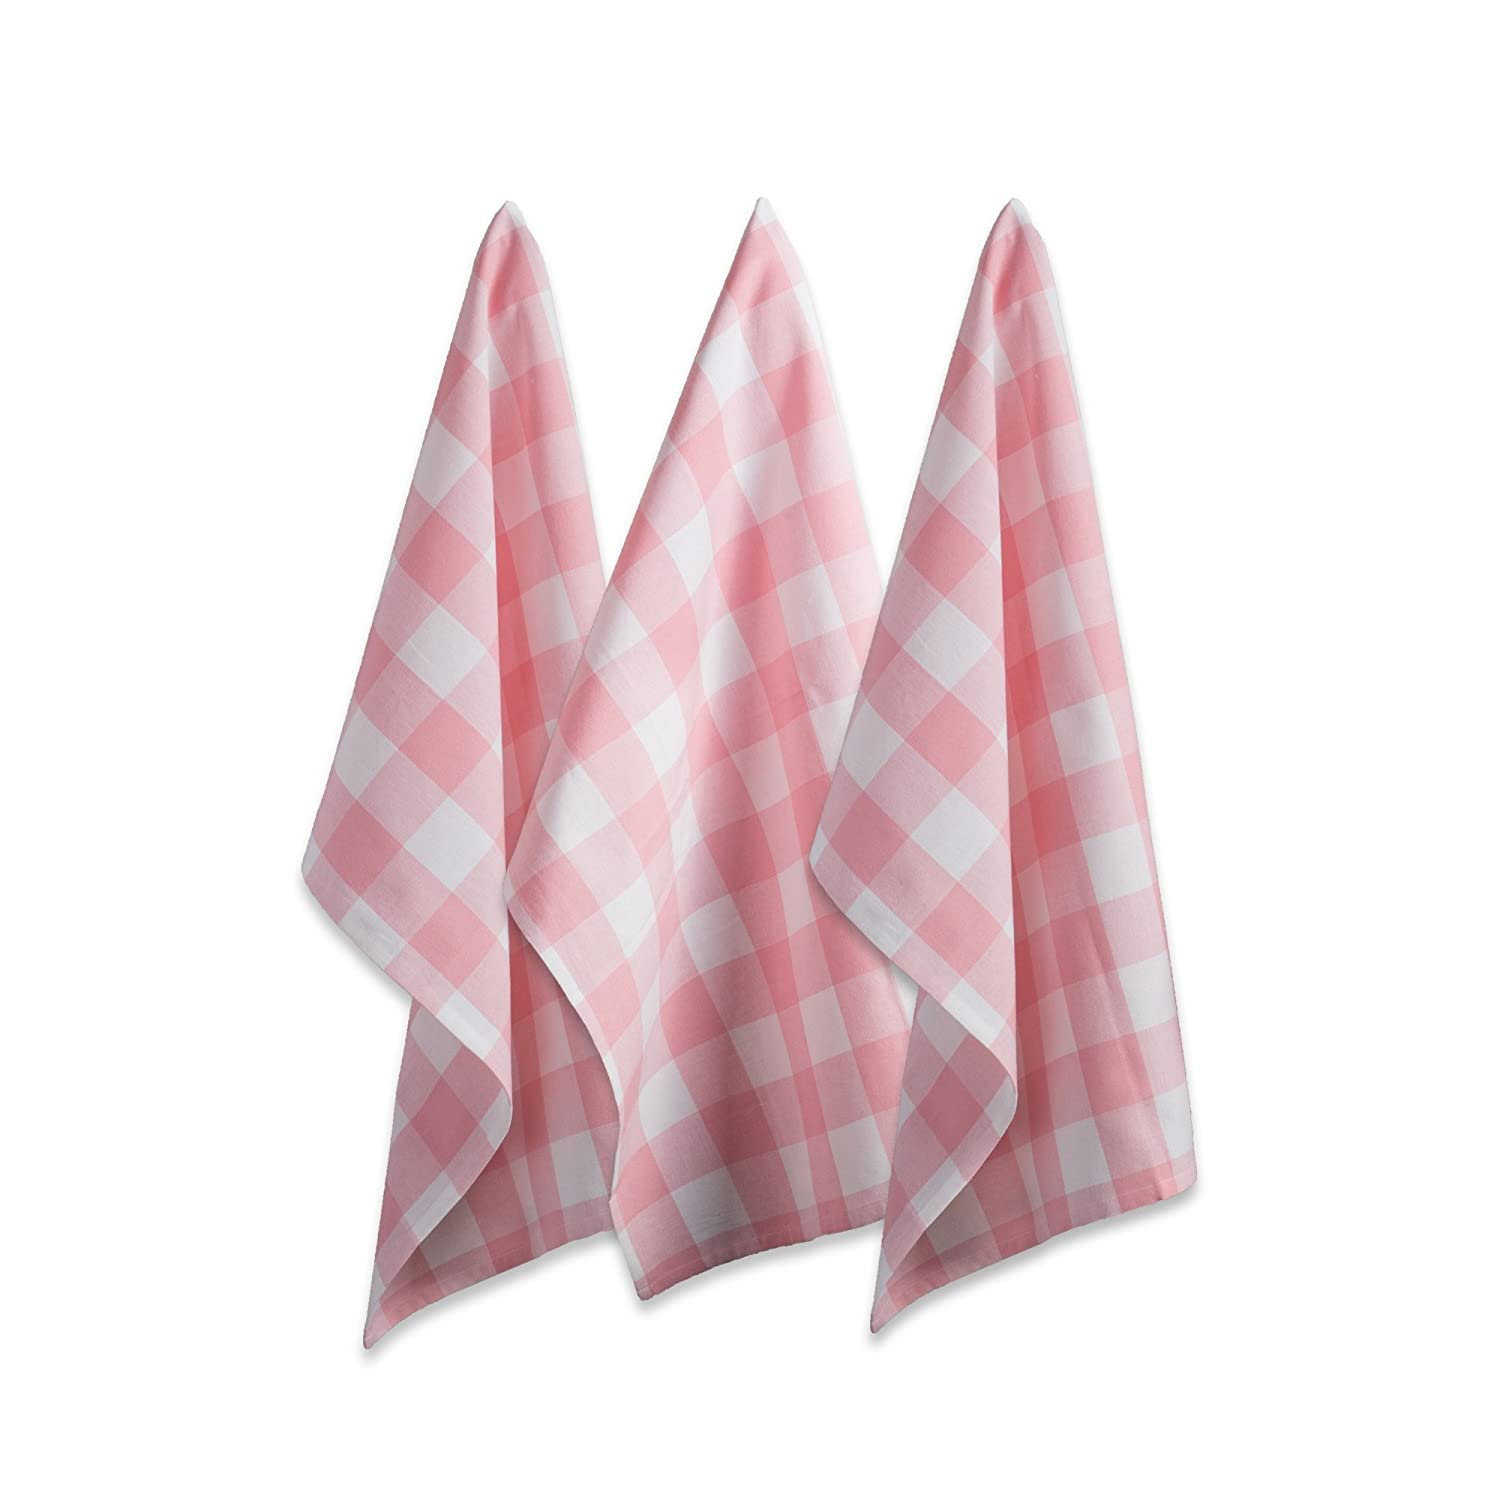 DII Oversized Kitchen Pink Buffalo Check Dishtowel (Set of 3), Pink and White Buffalo Check